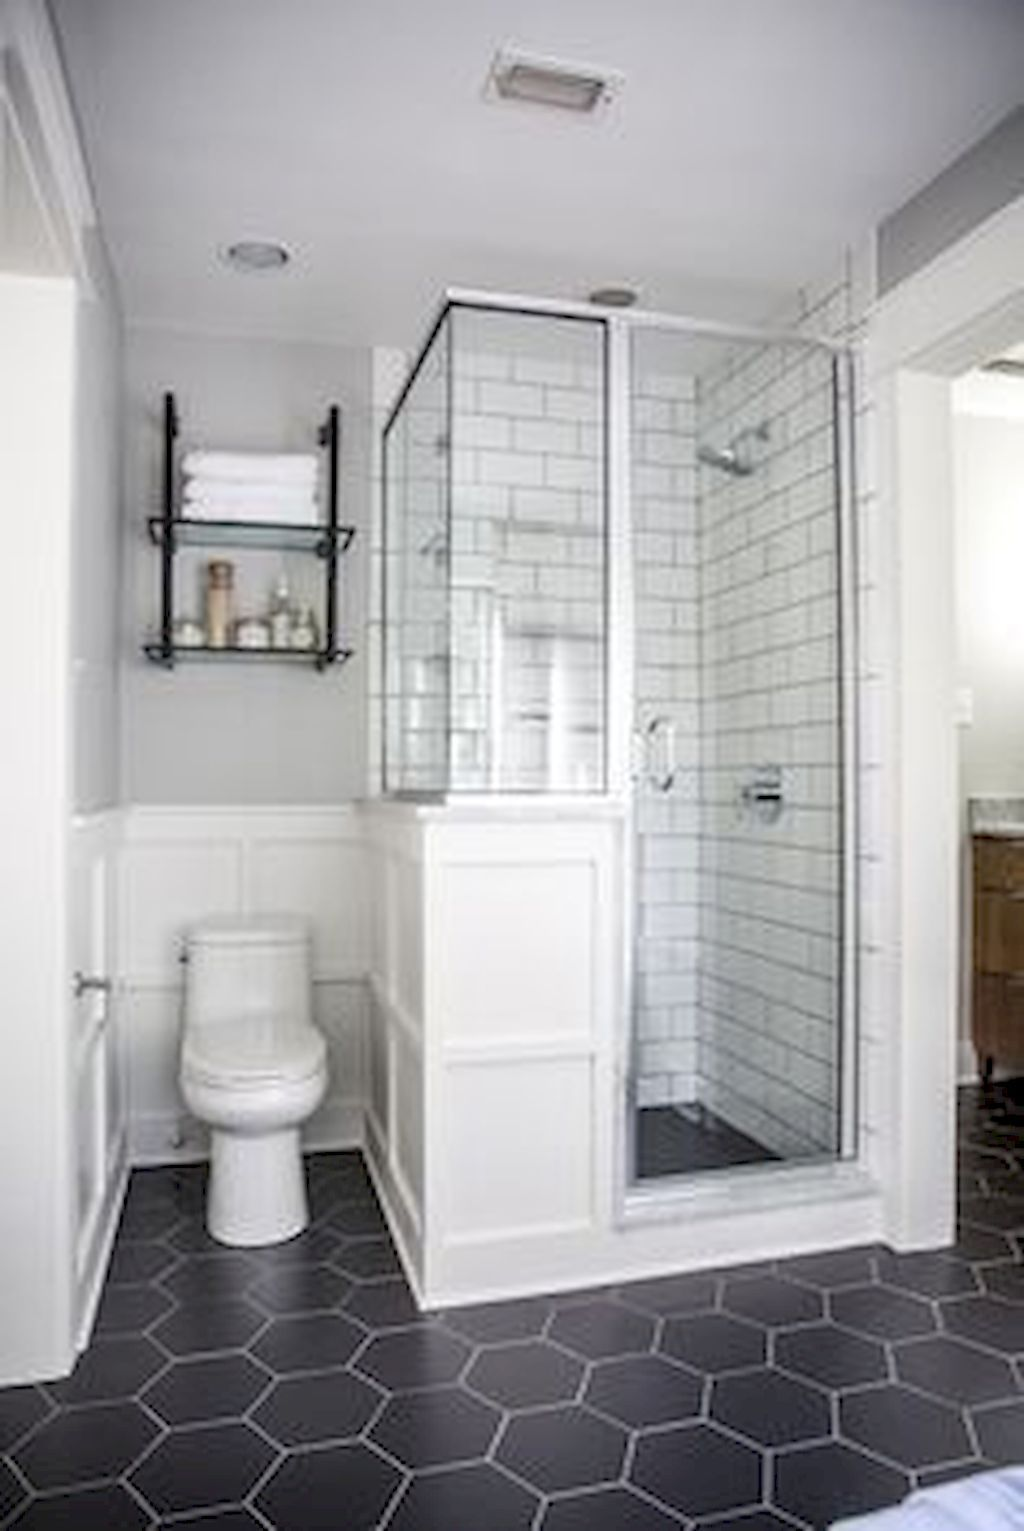 Pin by Becca on Bathroom in 2018 | Pinterest | Rustic farmhouse ...